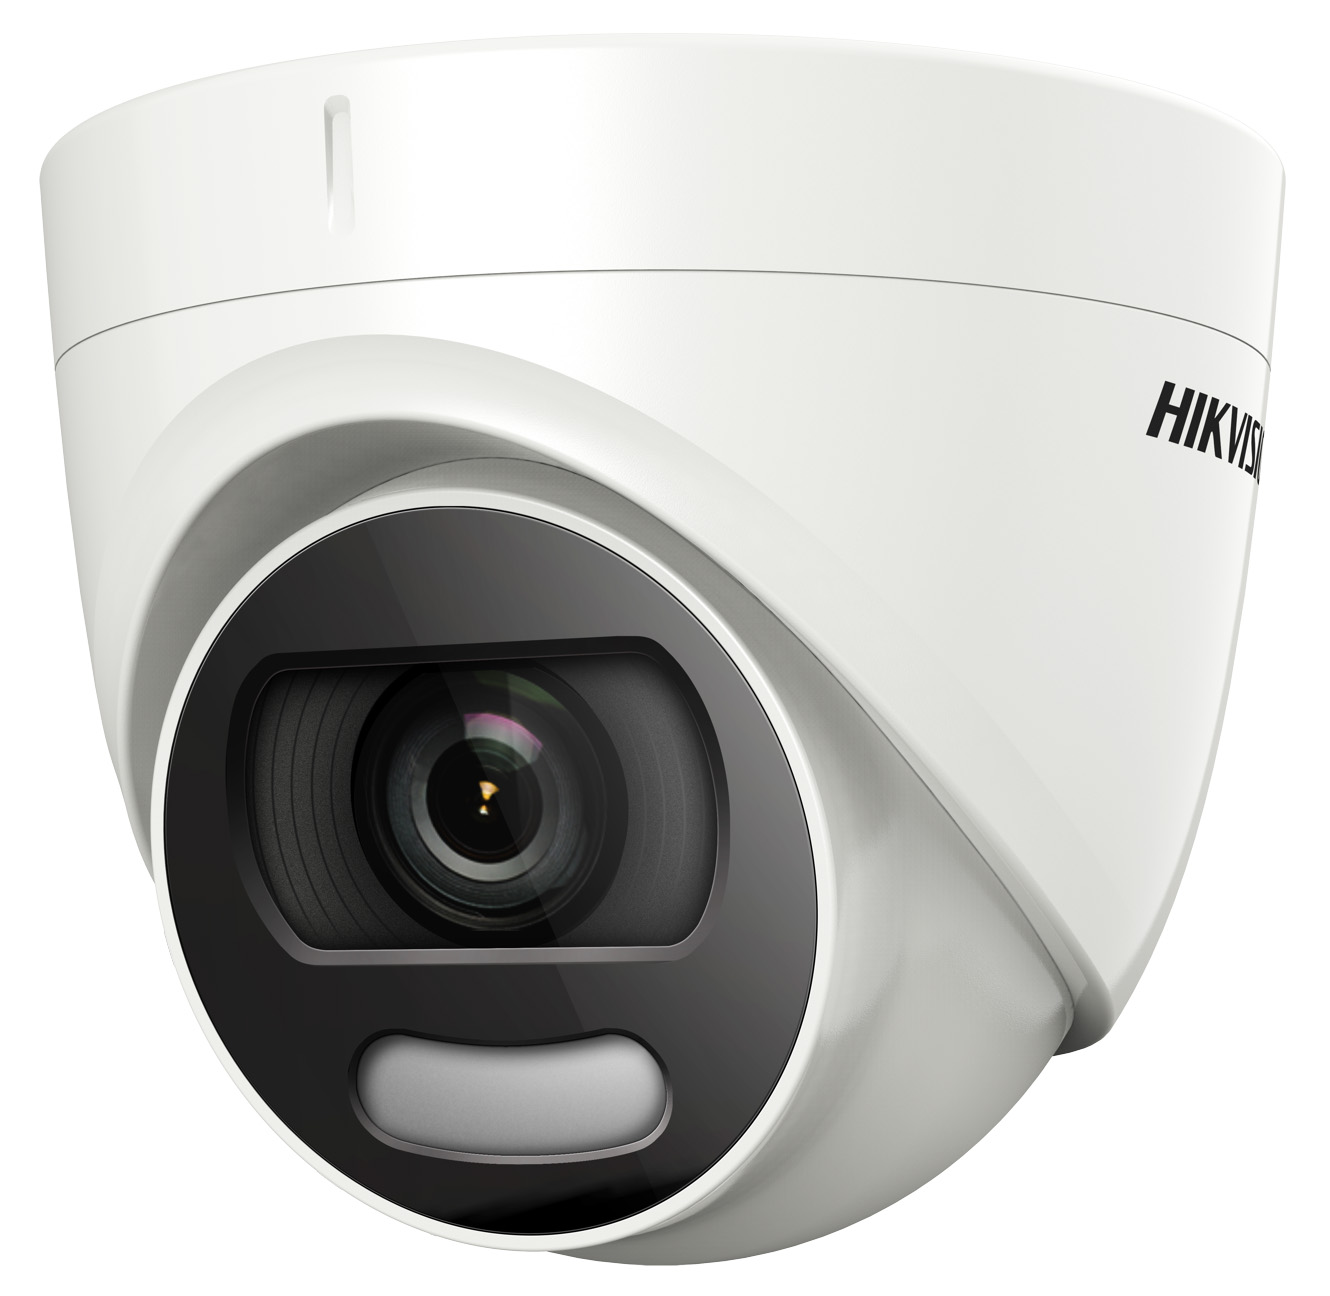 Hikvision DS-2CE72HFT-F28 2.8mm